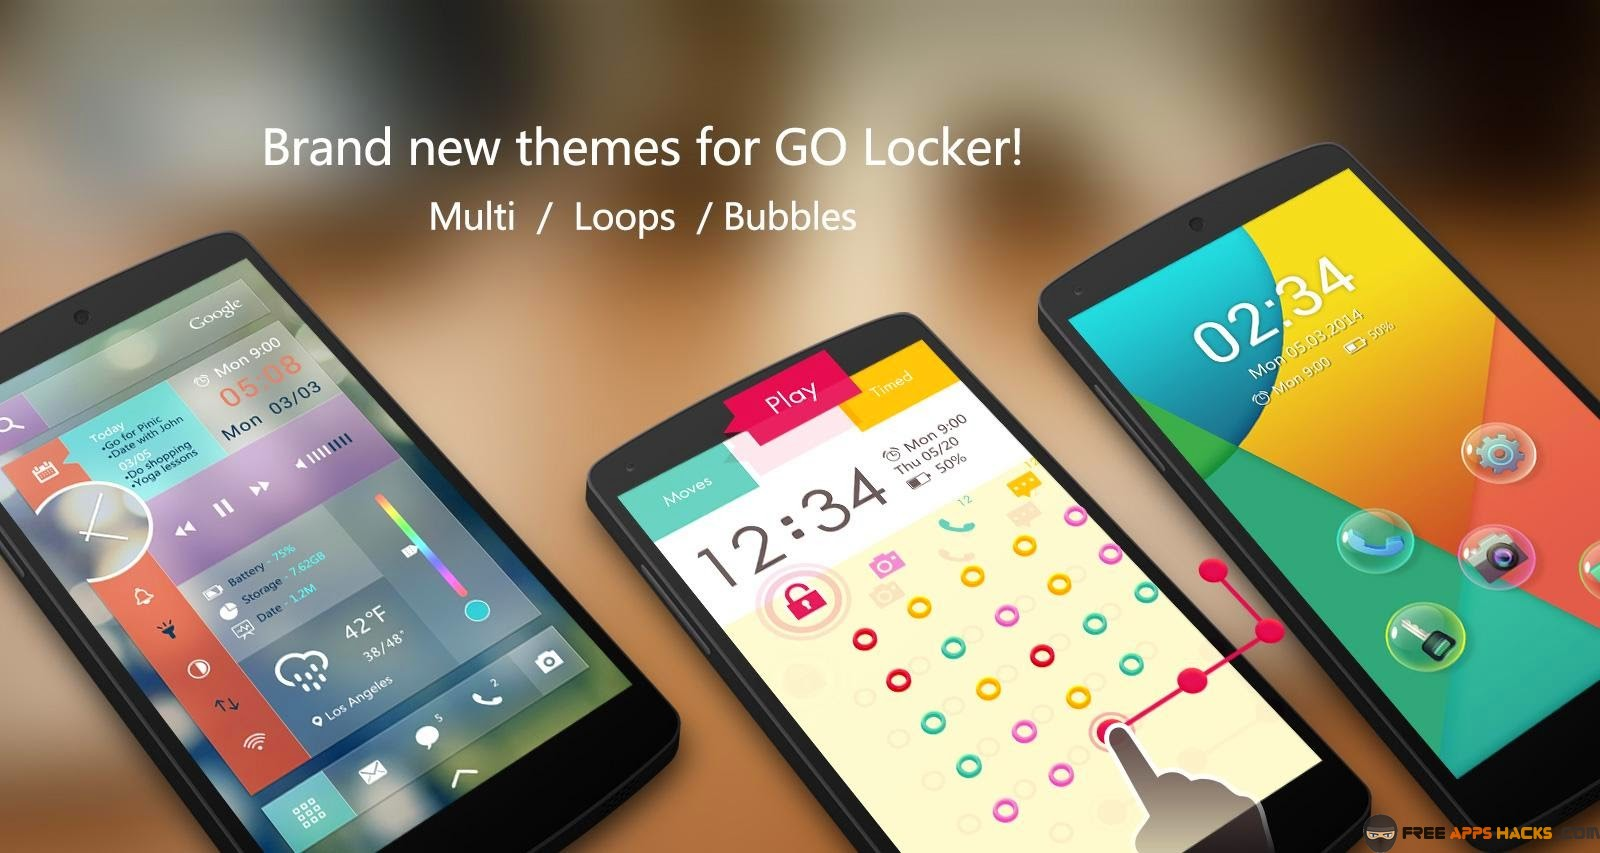 Go Locker - Theme & Wallpaper Vip Free Modded APK Android App - Free